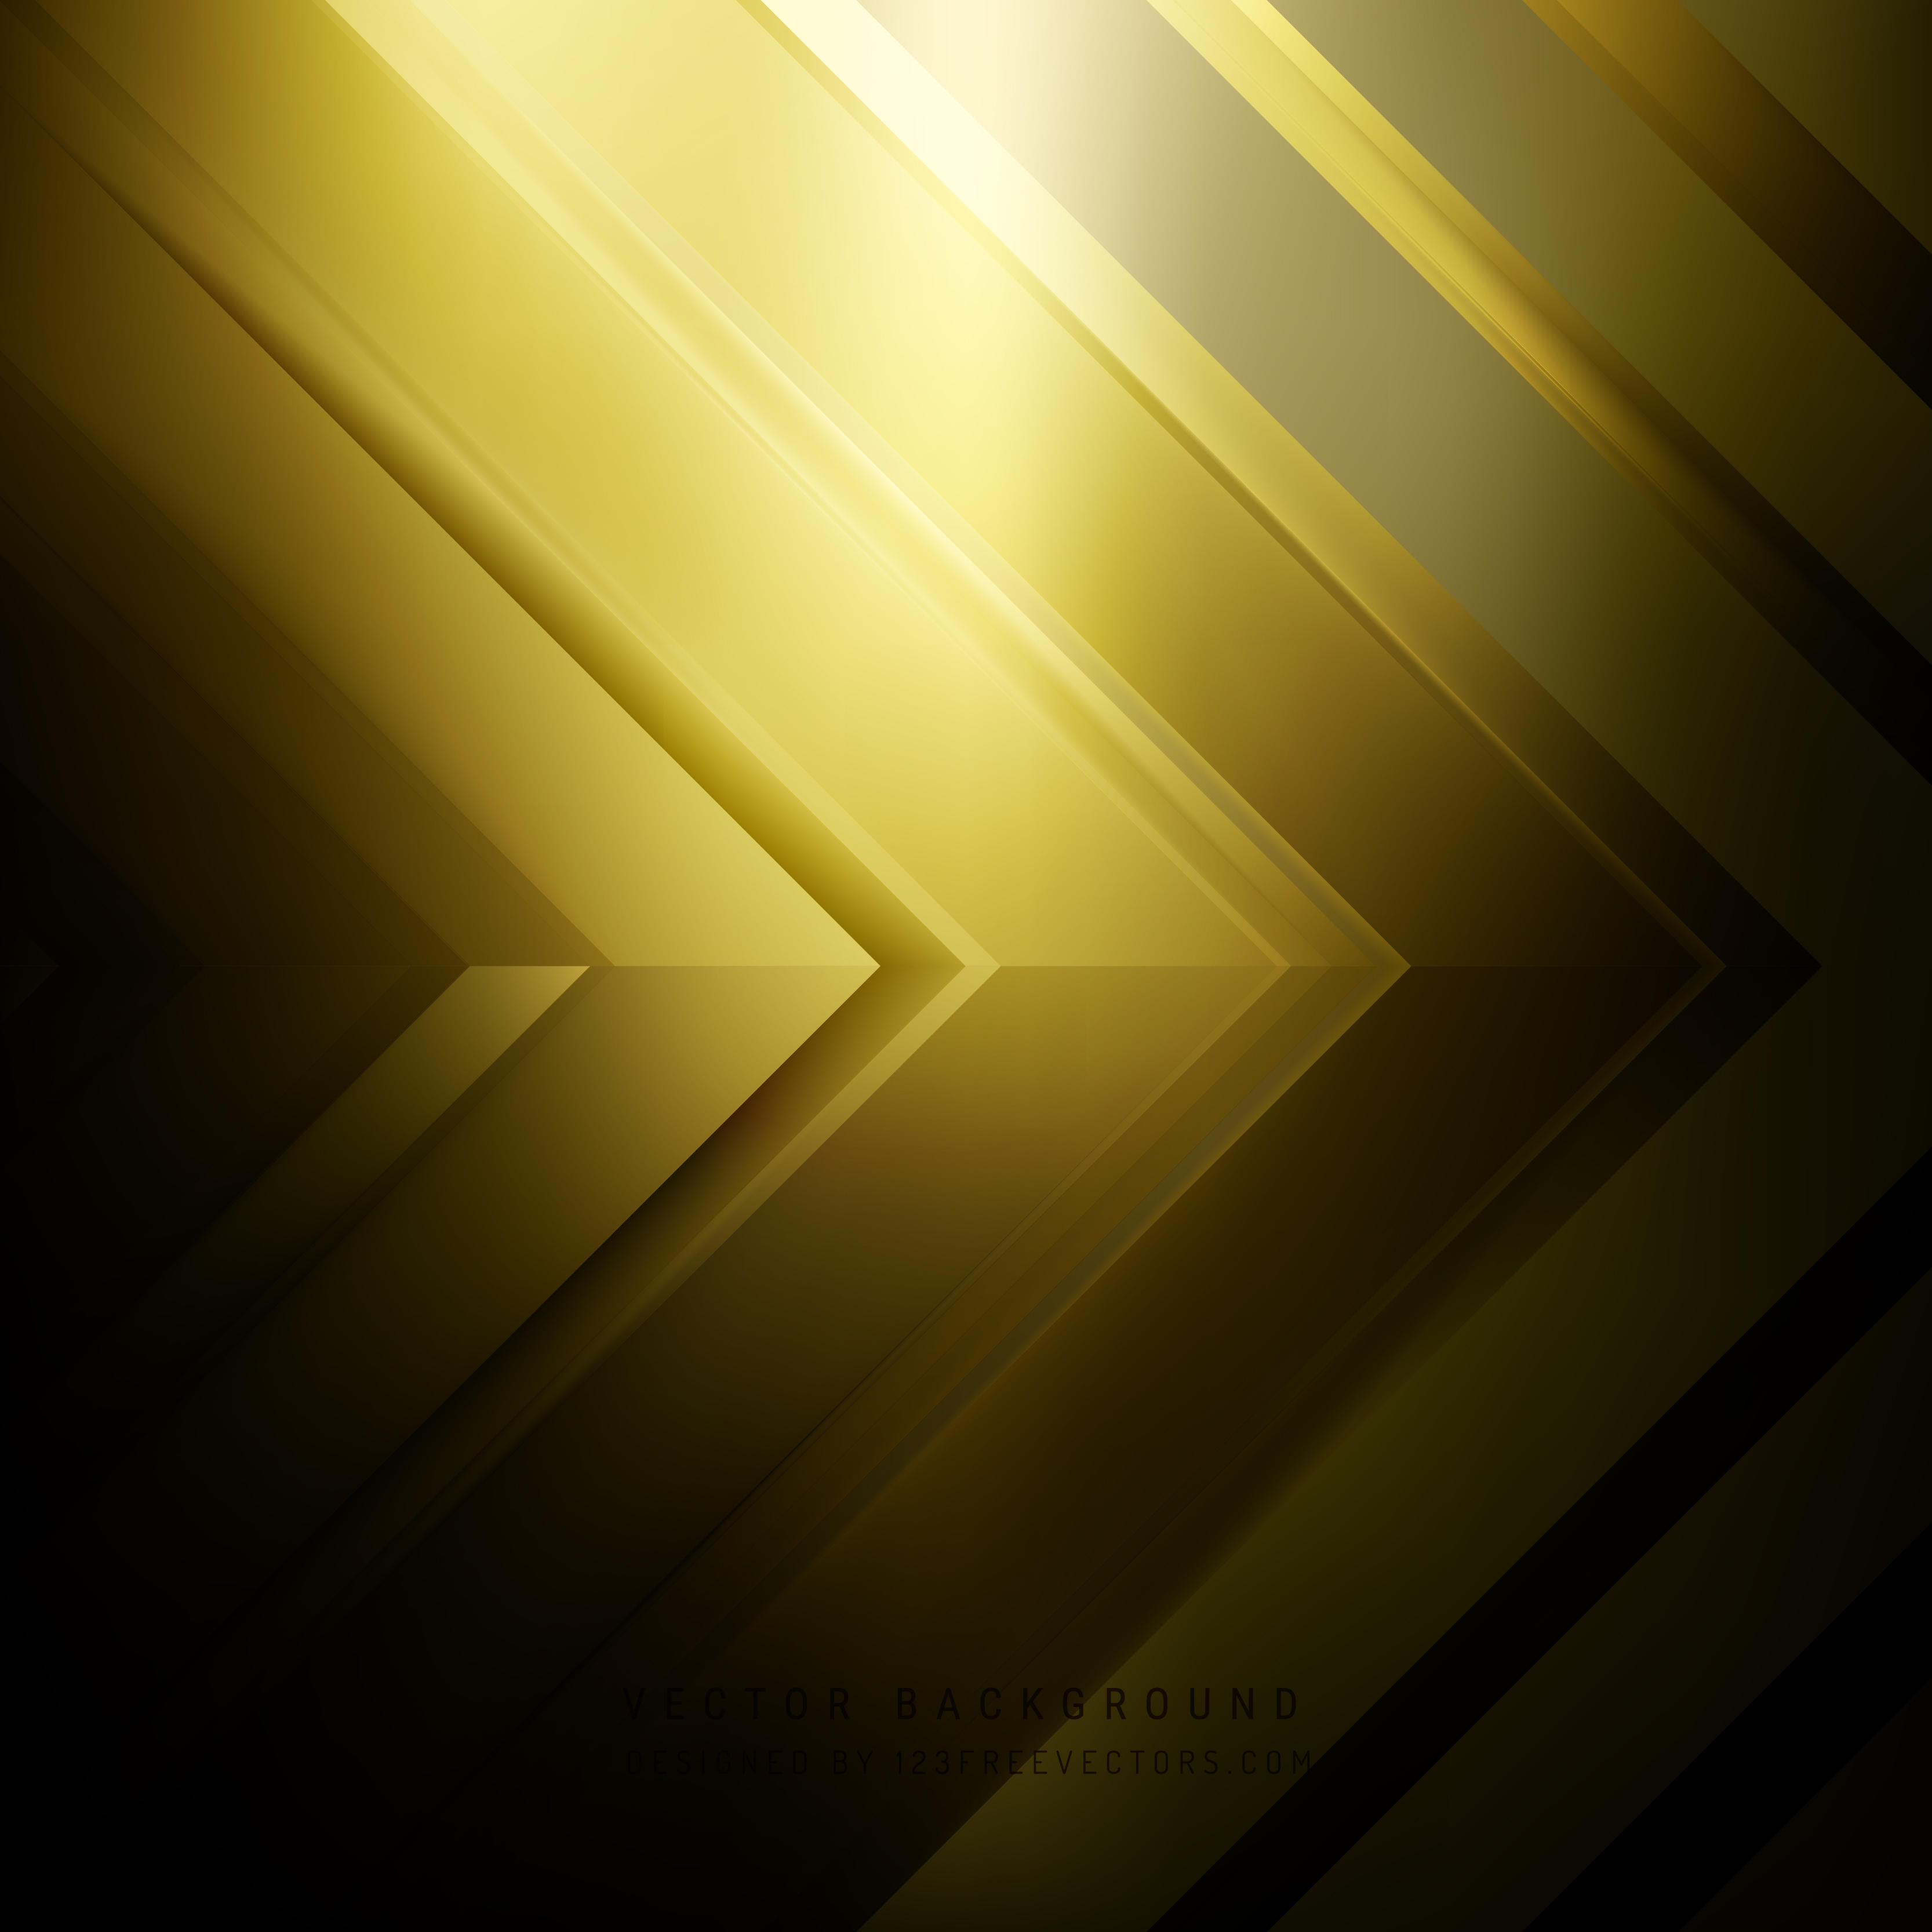 Abstract Black Gold Arrow Background Design